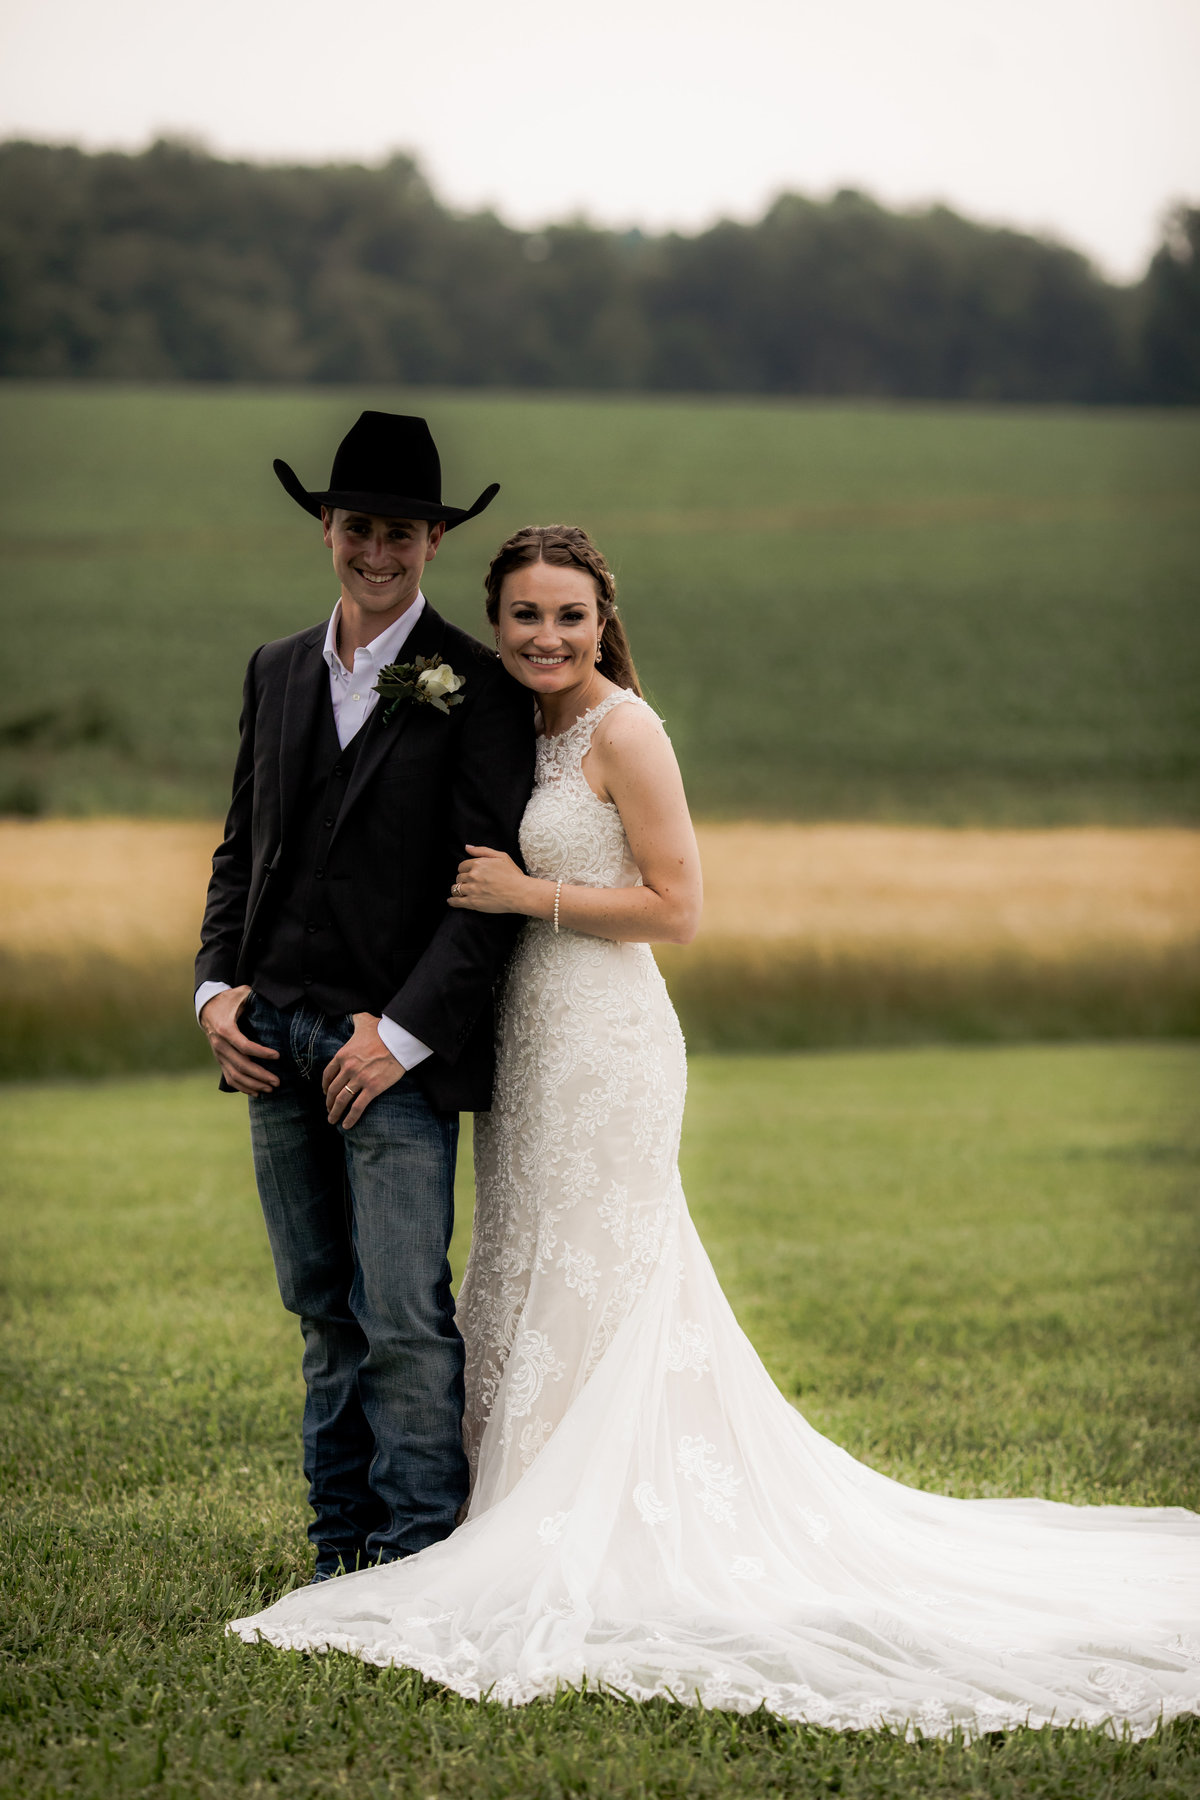 Nsshville Bride - Nashville Brides - The Hayloft Weddings - Tennessee Brides - Kentucky Brides - Southern Brides - Cowboys Wife - Cowboys Bride - Ranch Weddings - Cowboys and Belles064